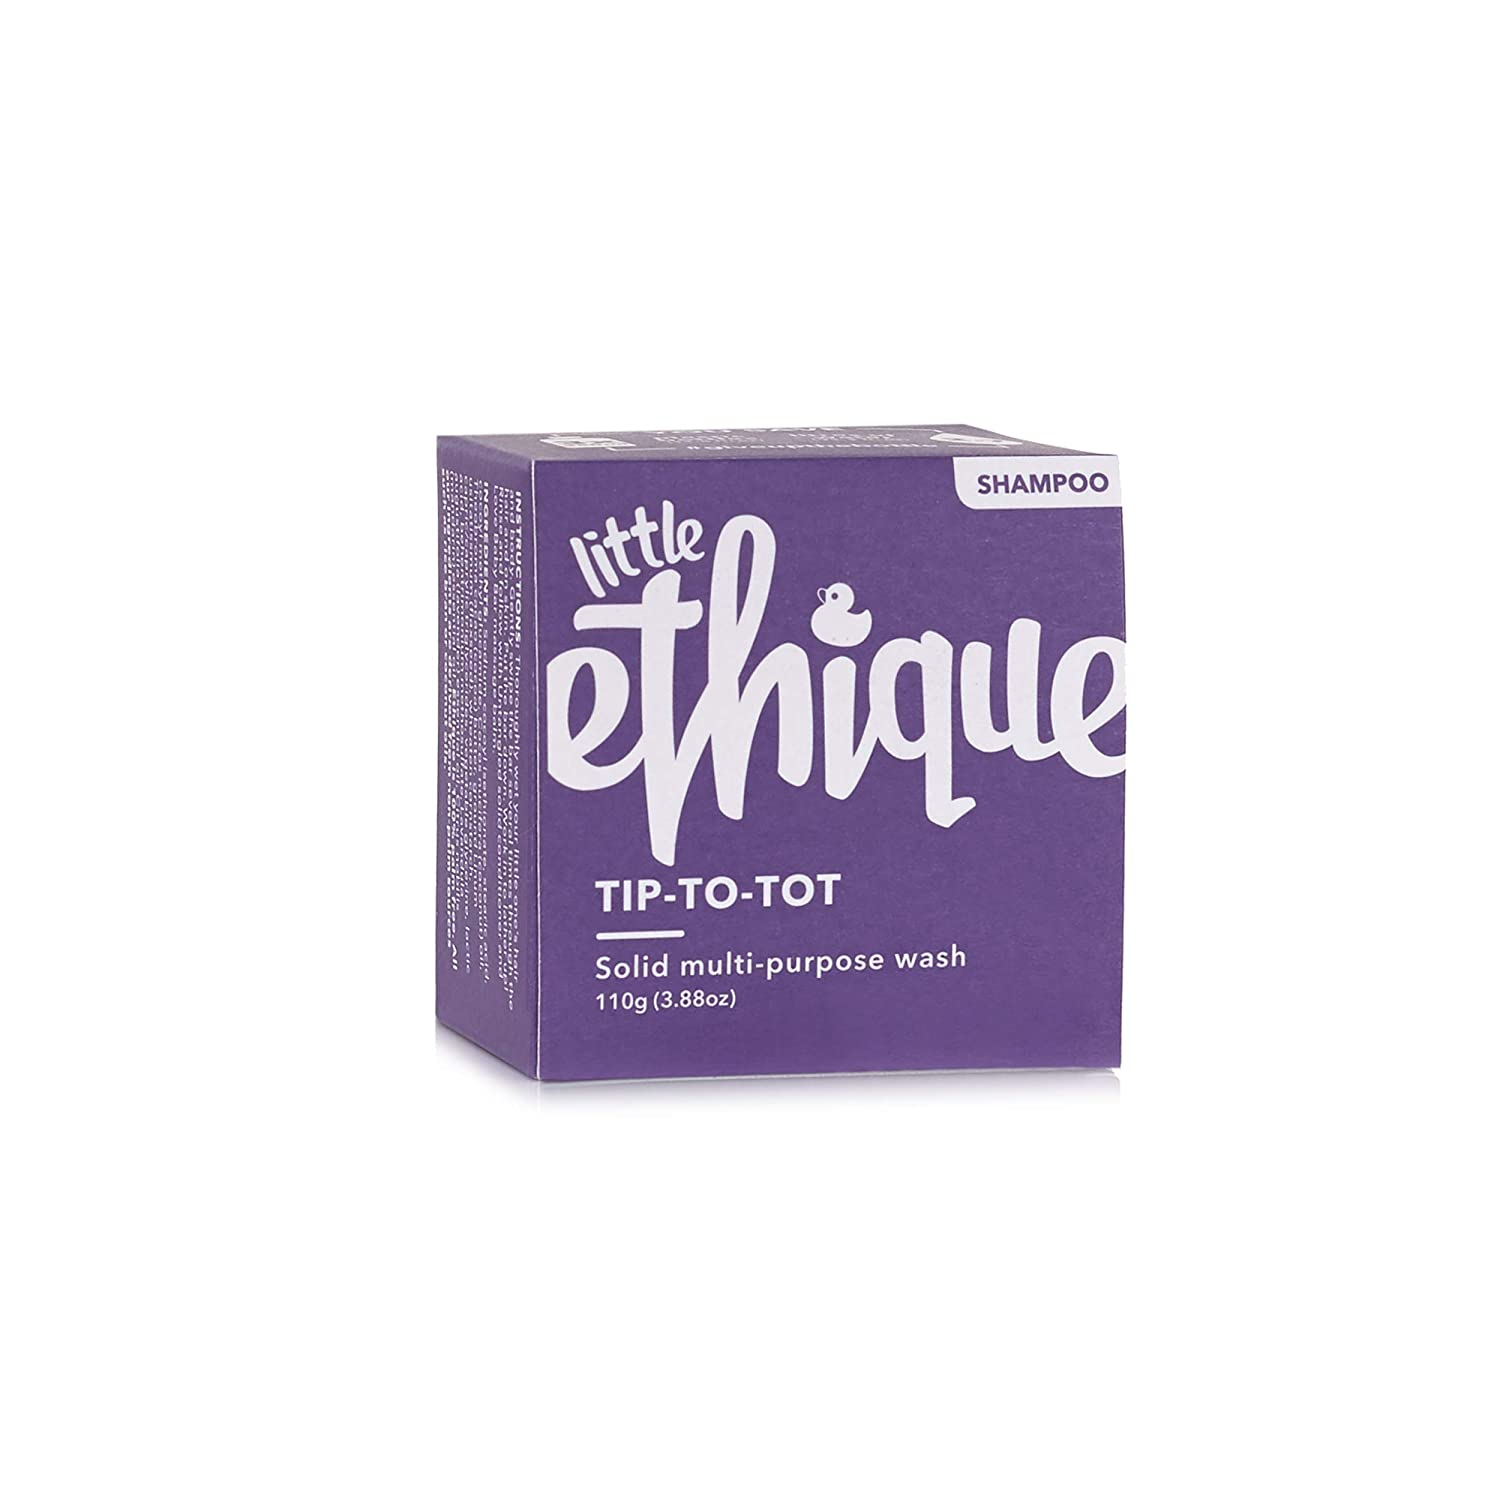 Ethique Eco-Friendly Solid Multi Purpose Wash for Kids, Tip To Tot - Sustainable Natural Tip To Tot Baby Wash from Top to Toe, Plastic Free, Vegan, Plant Based, 100% Compostable and Zero Waste, 3.88oz